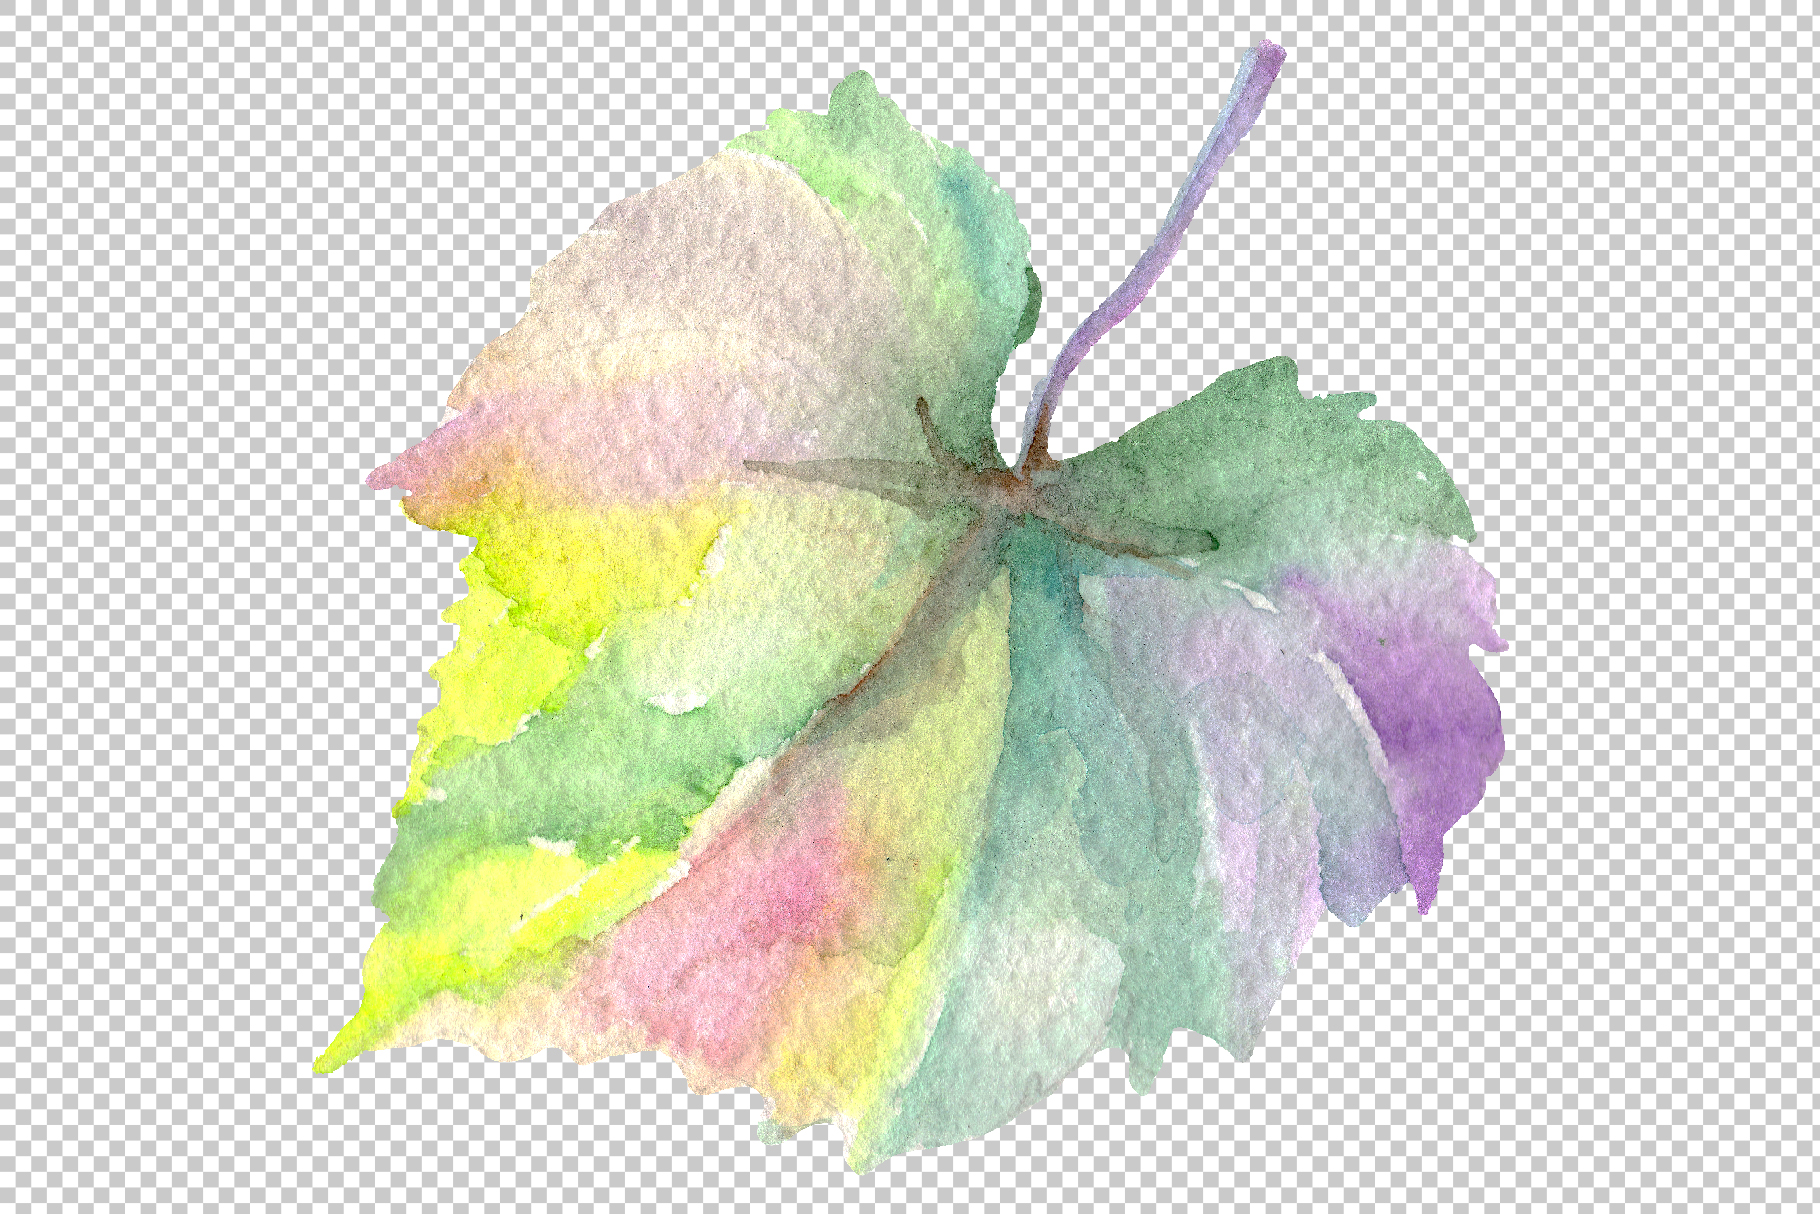 Blue grapes Watercolor png example image 5